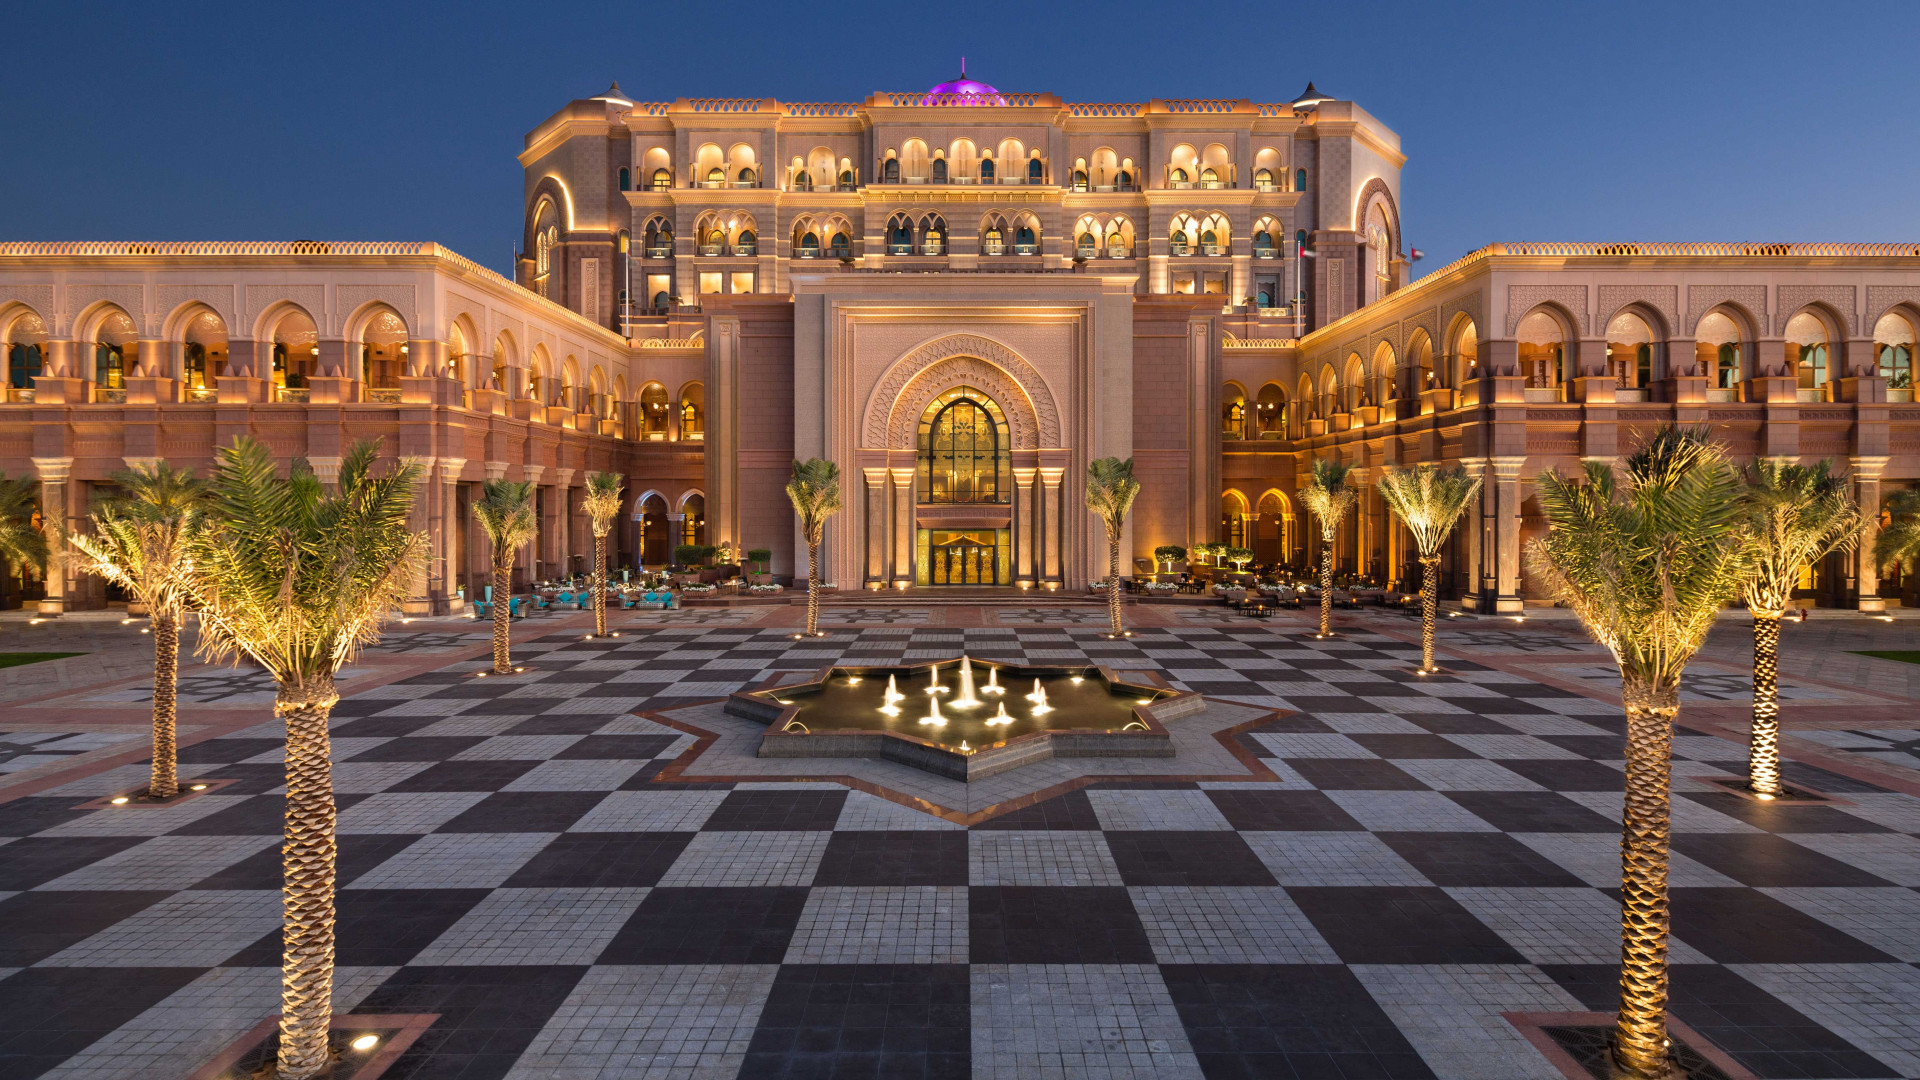 Courtyard at Kempinski Emirates Palace in Abu Dhabi